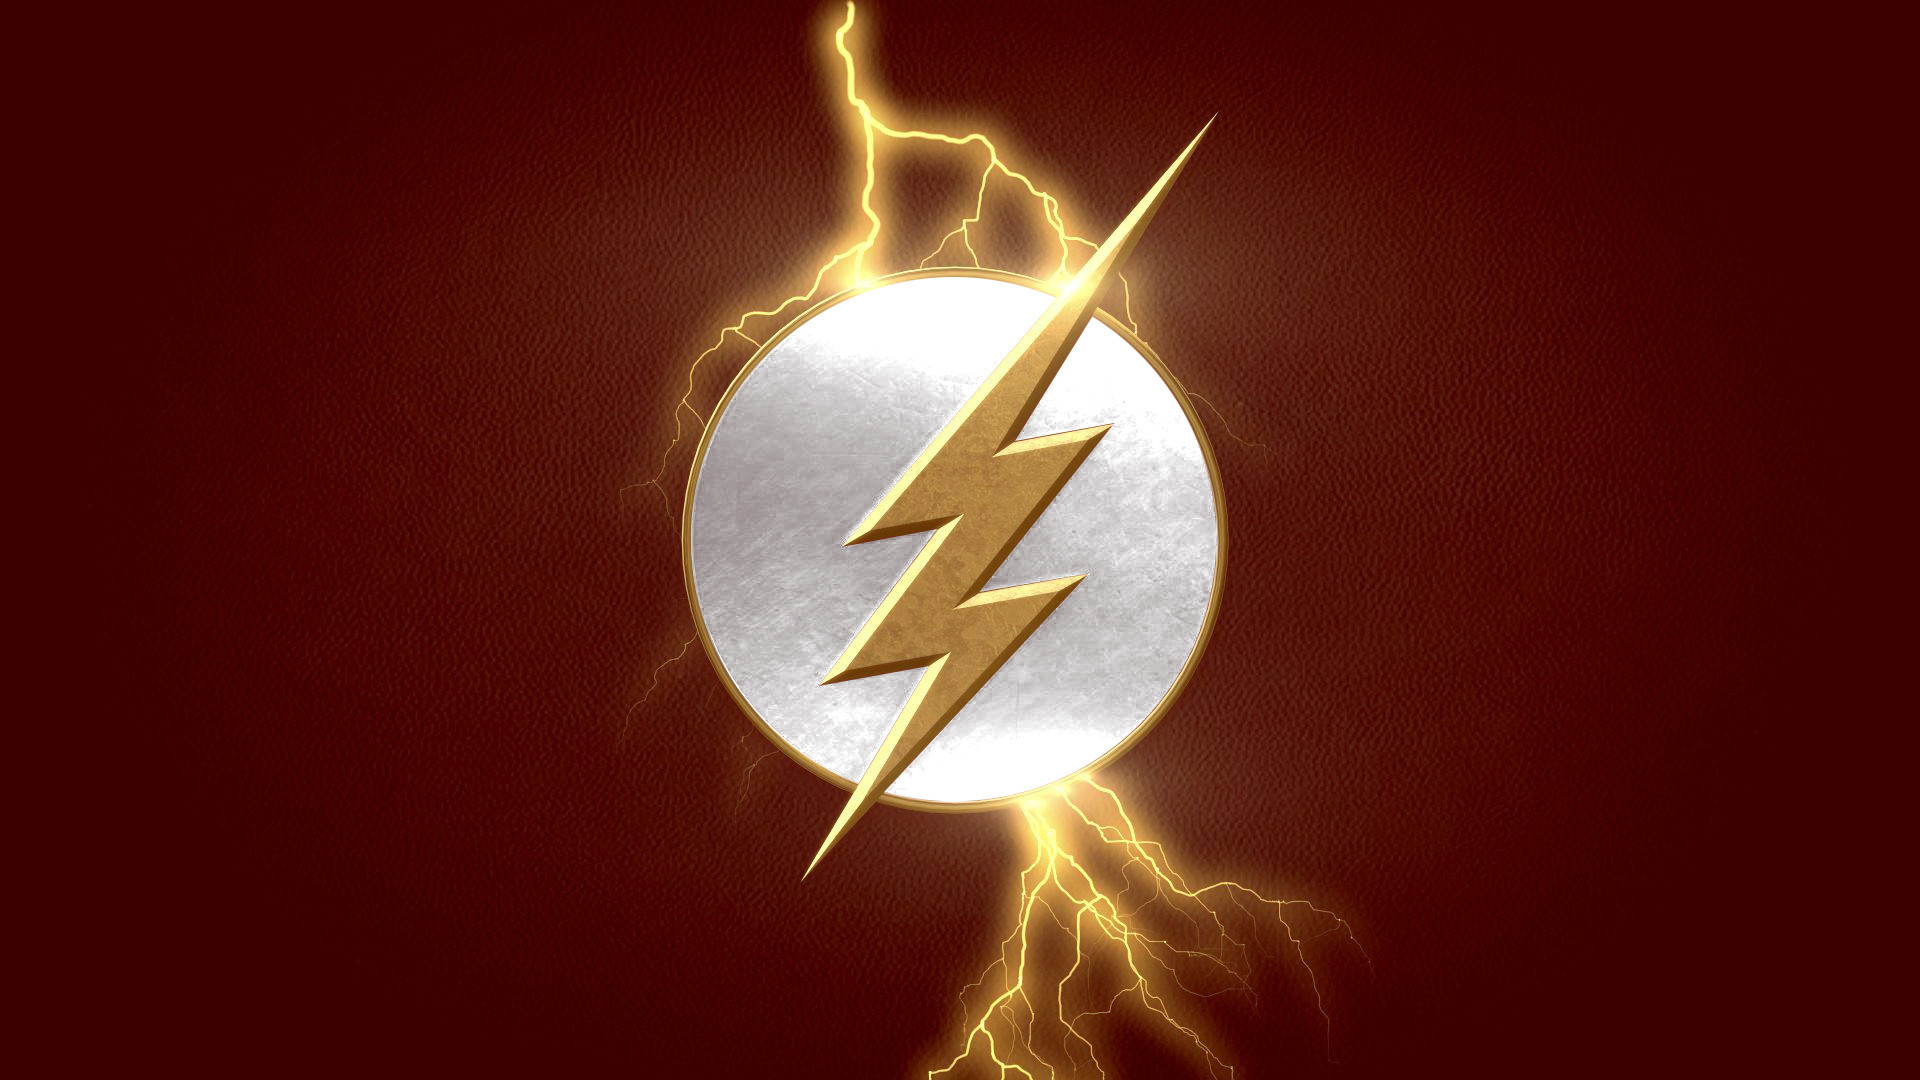 The Flash HD Wallpaper 77 images 1920x1080